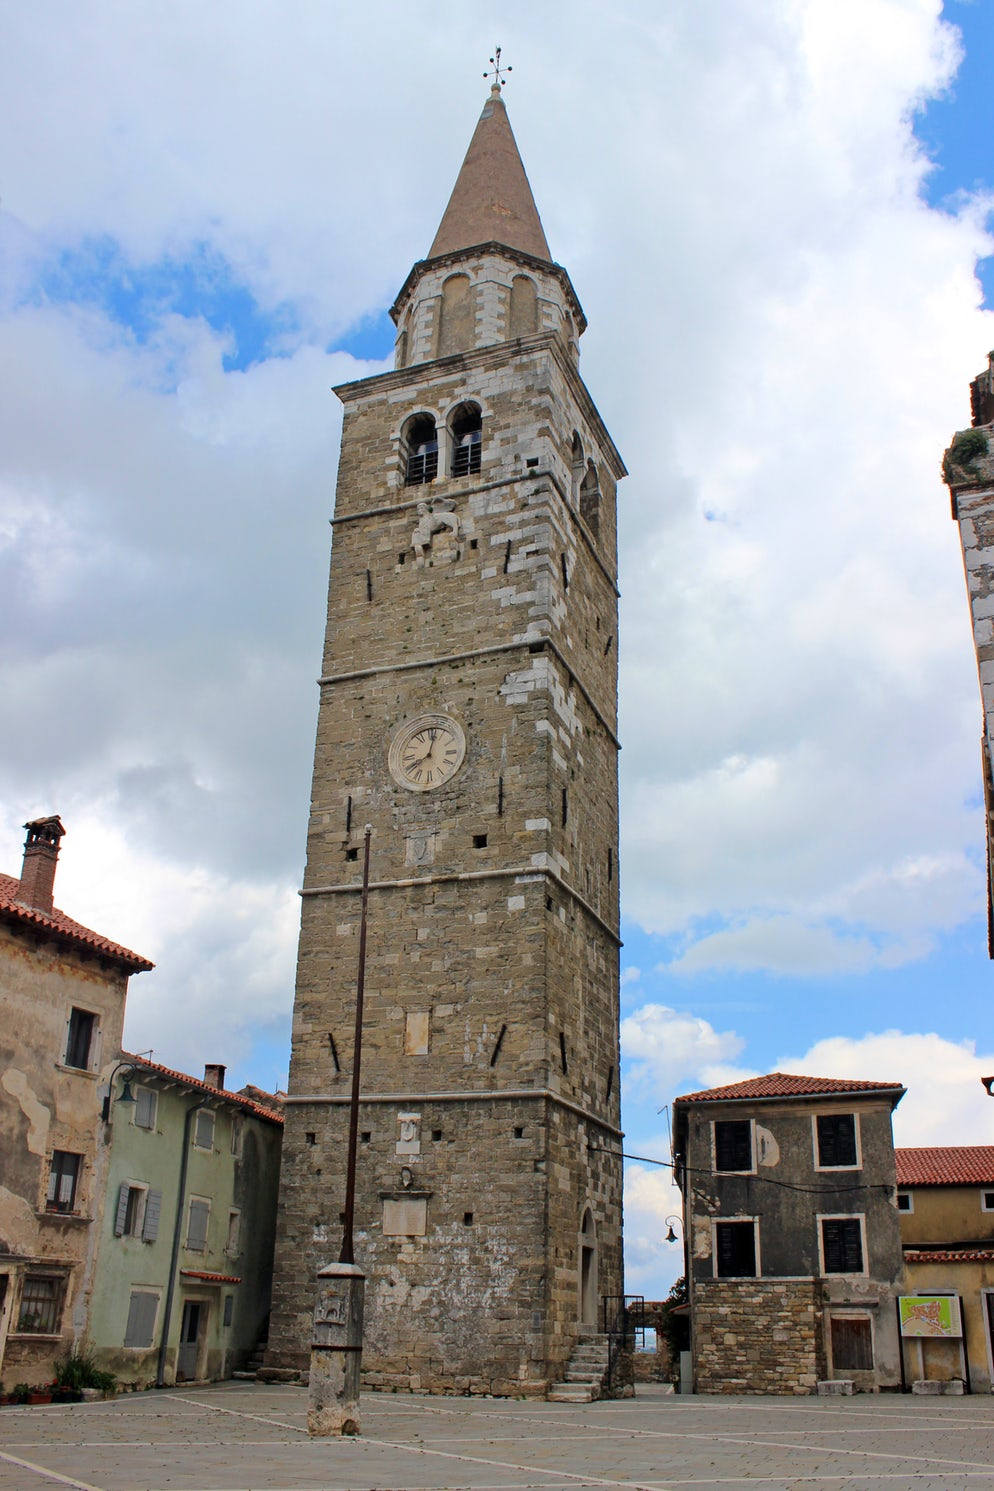 Bell-tower, San Servolo, Buje; Photo © credits: Maesi64